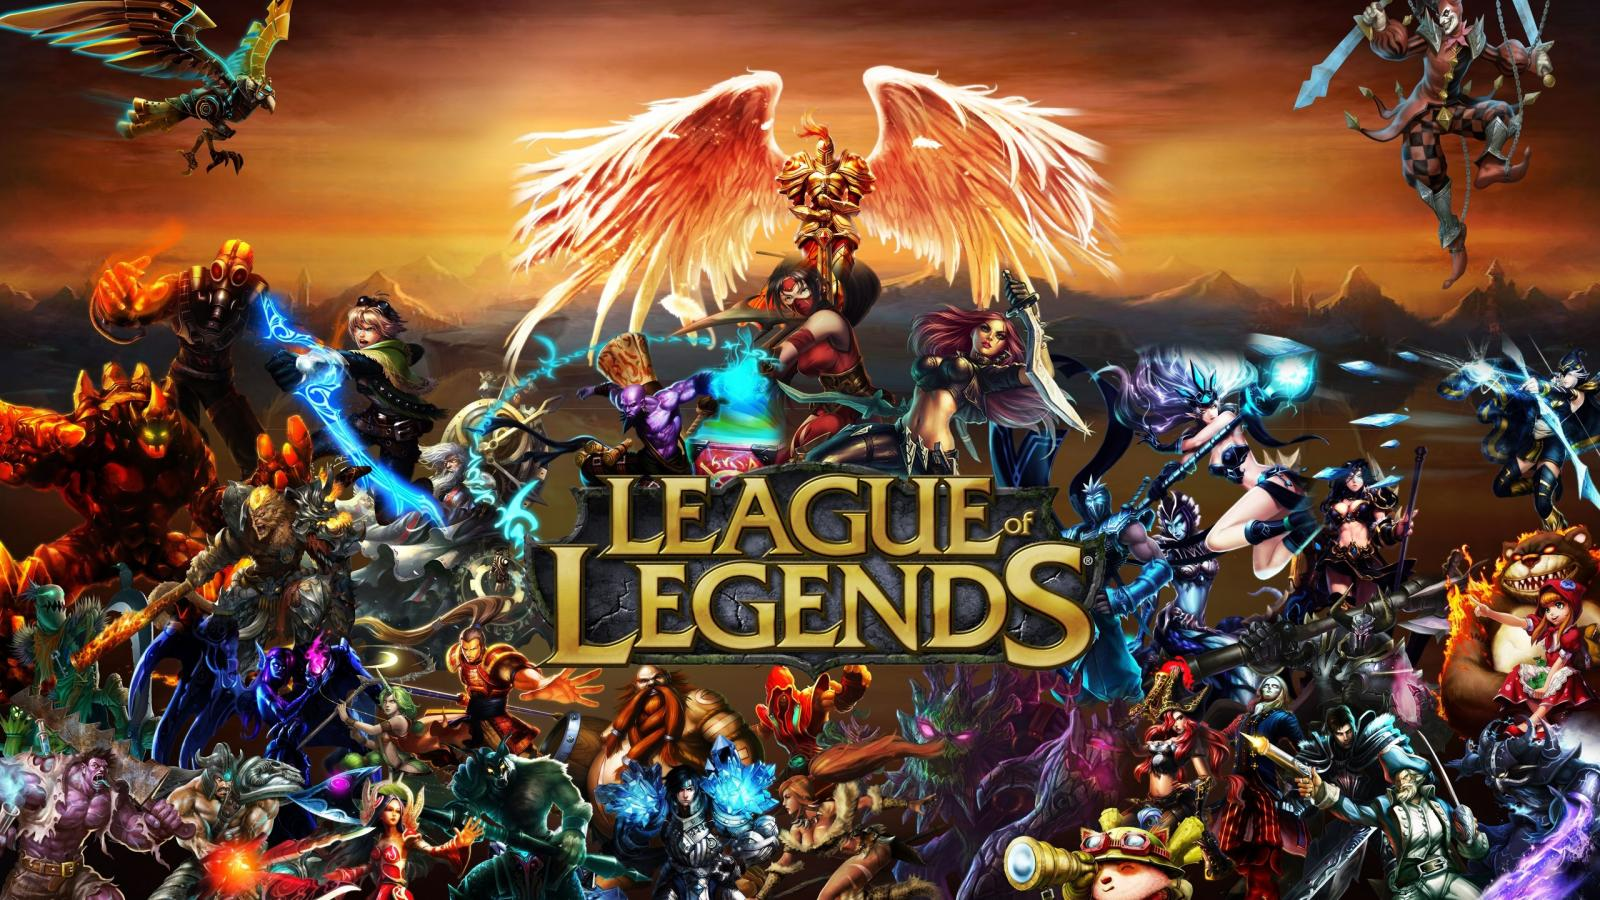 Games Coming In 2020.League Of Legends For Mobile And Consoles Is Coming In 2020